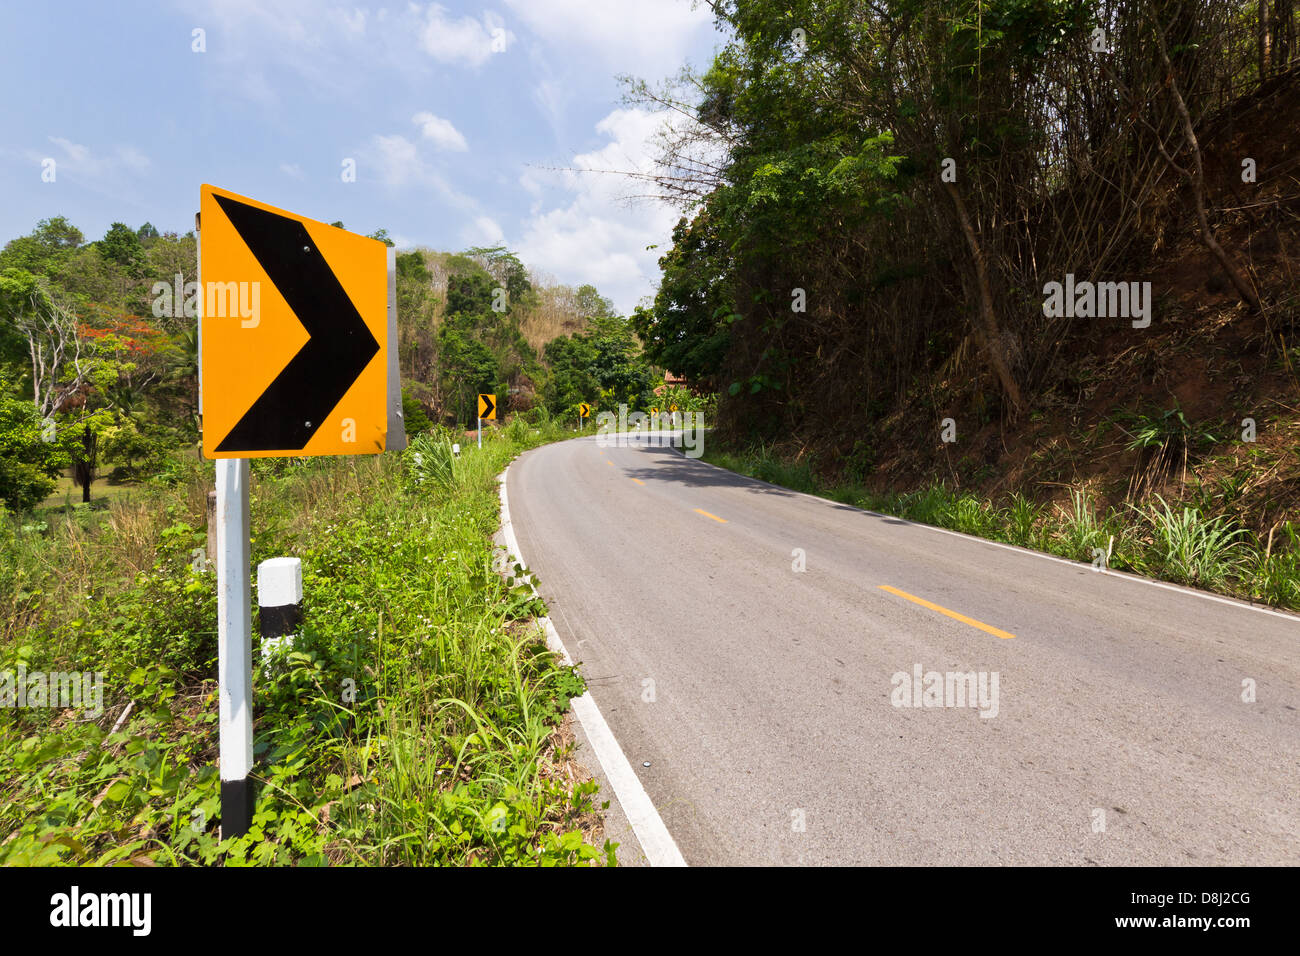 Road Signs warn Drivers about Ahead Dangerous Curve. - Stock Image